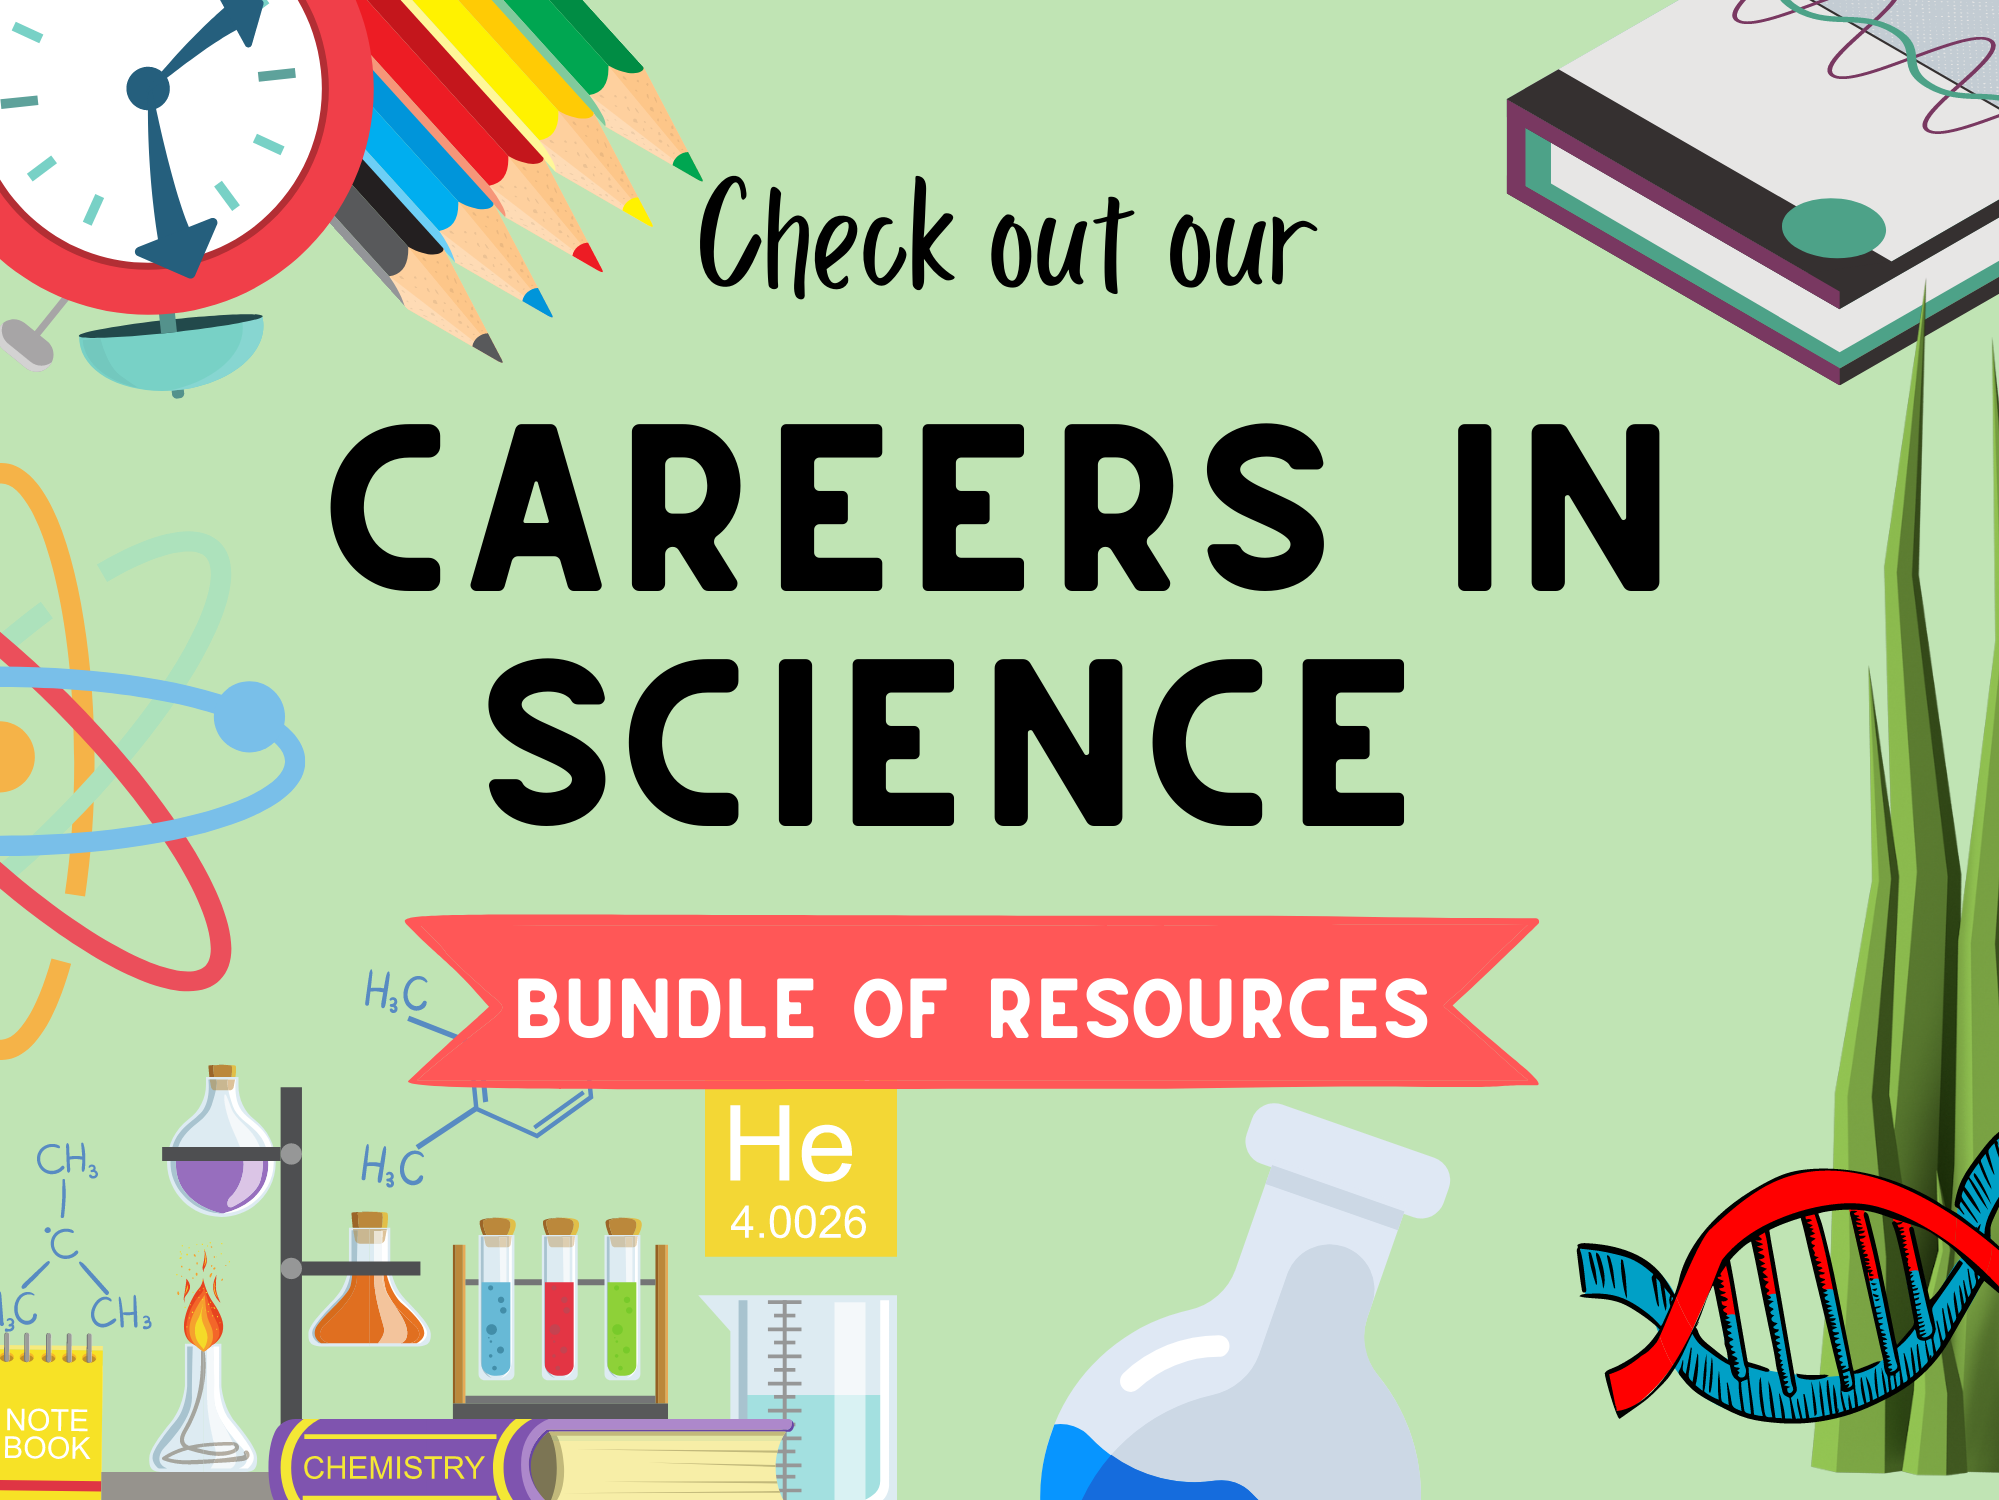 Science and Careers